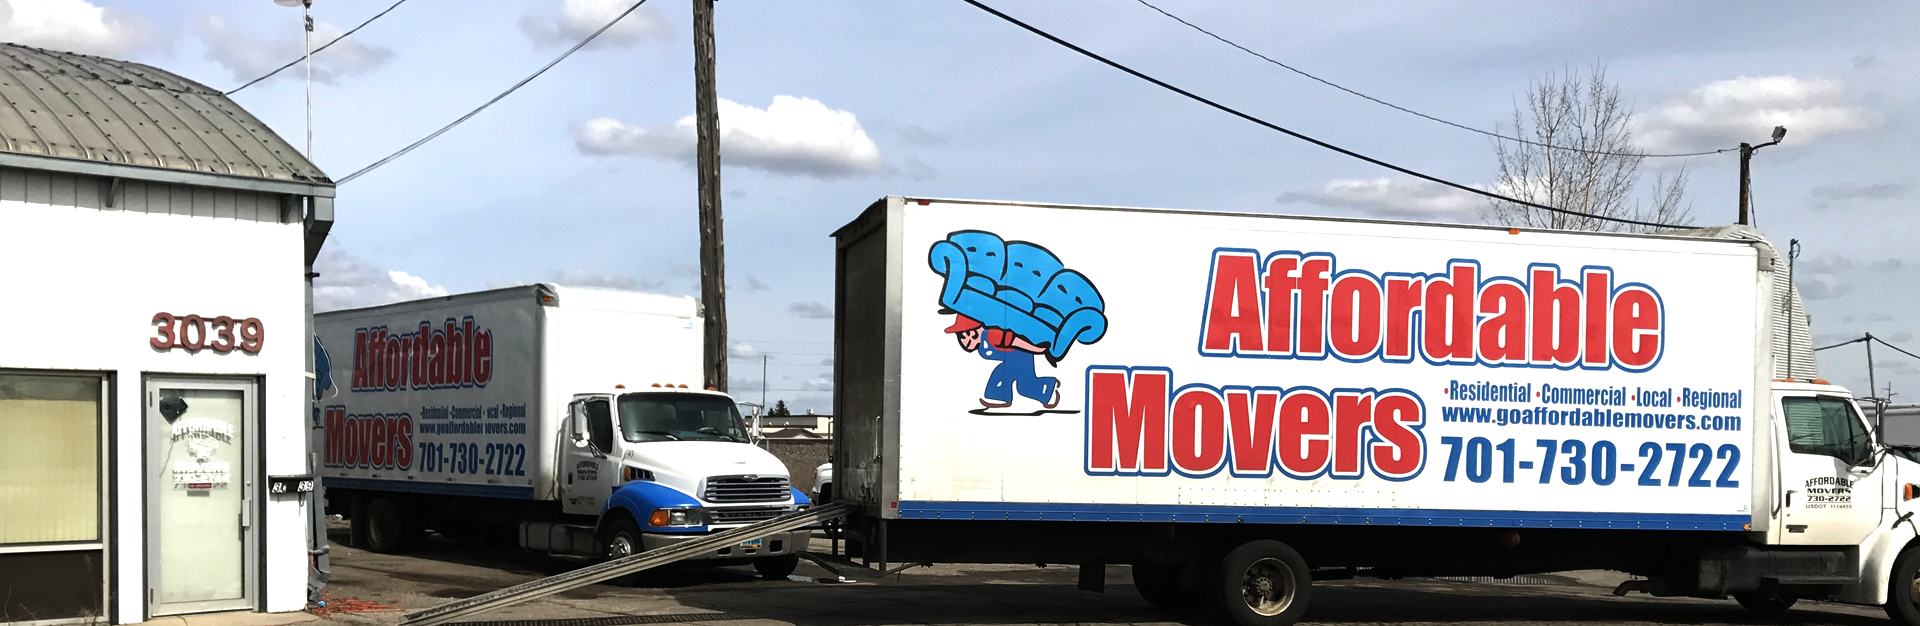 Apartment Moving Banner Image